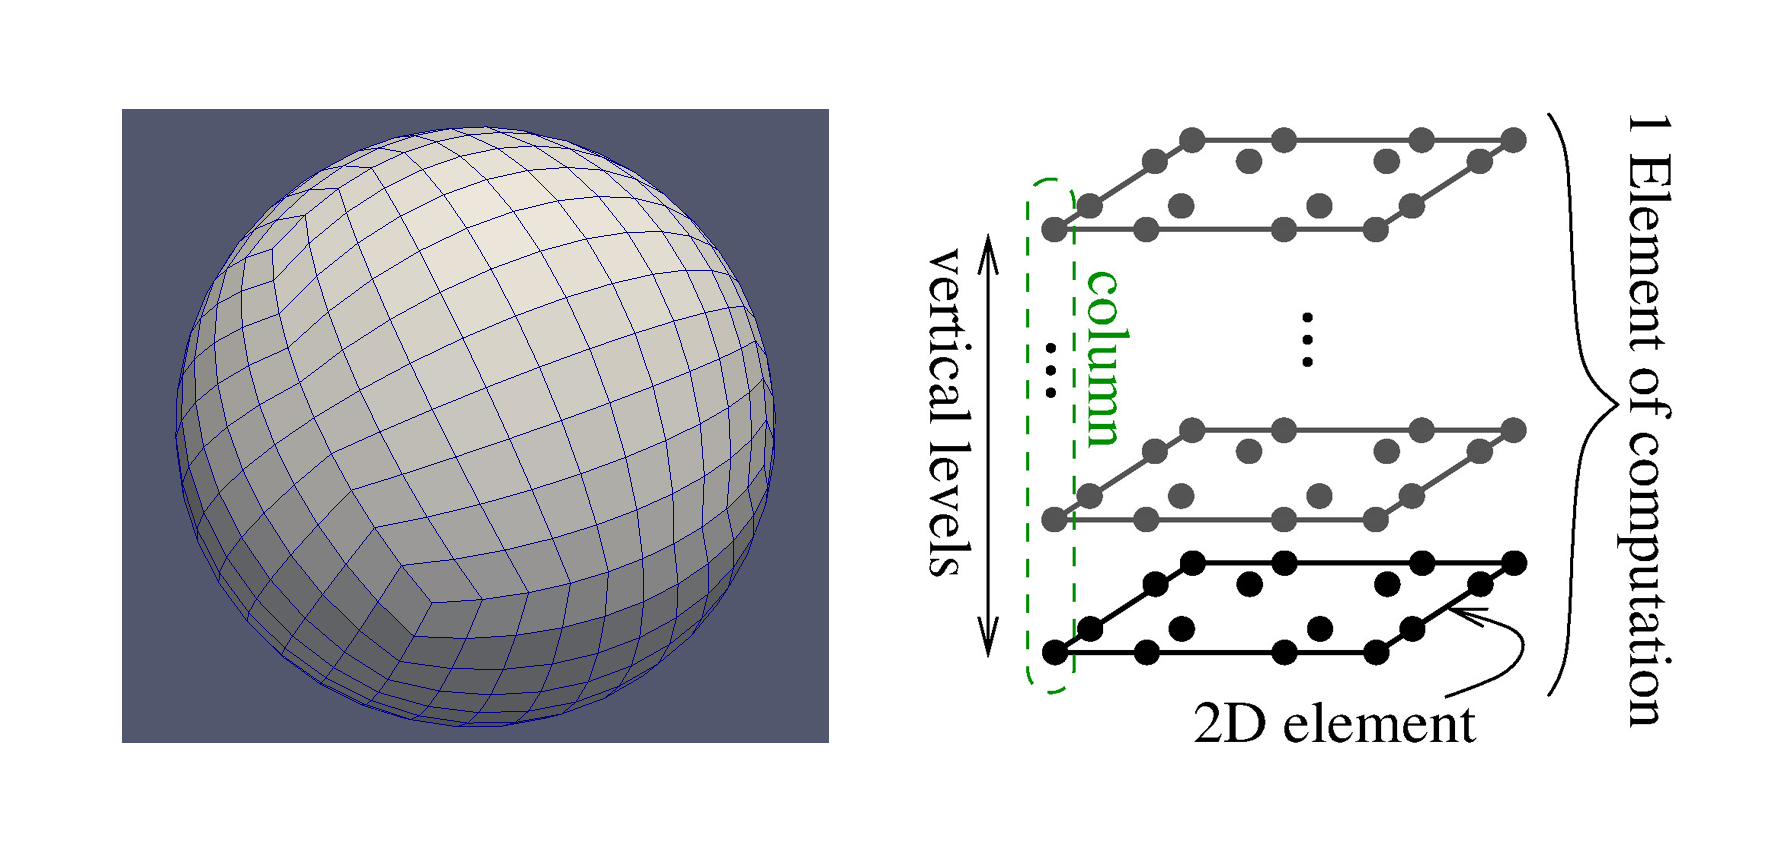 HOMME cubed sphere and a 2D square element